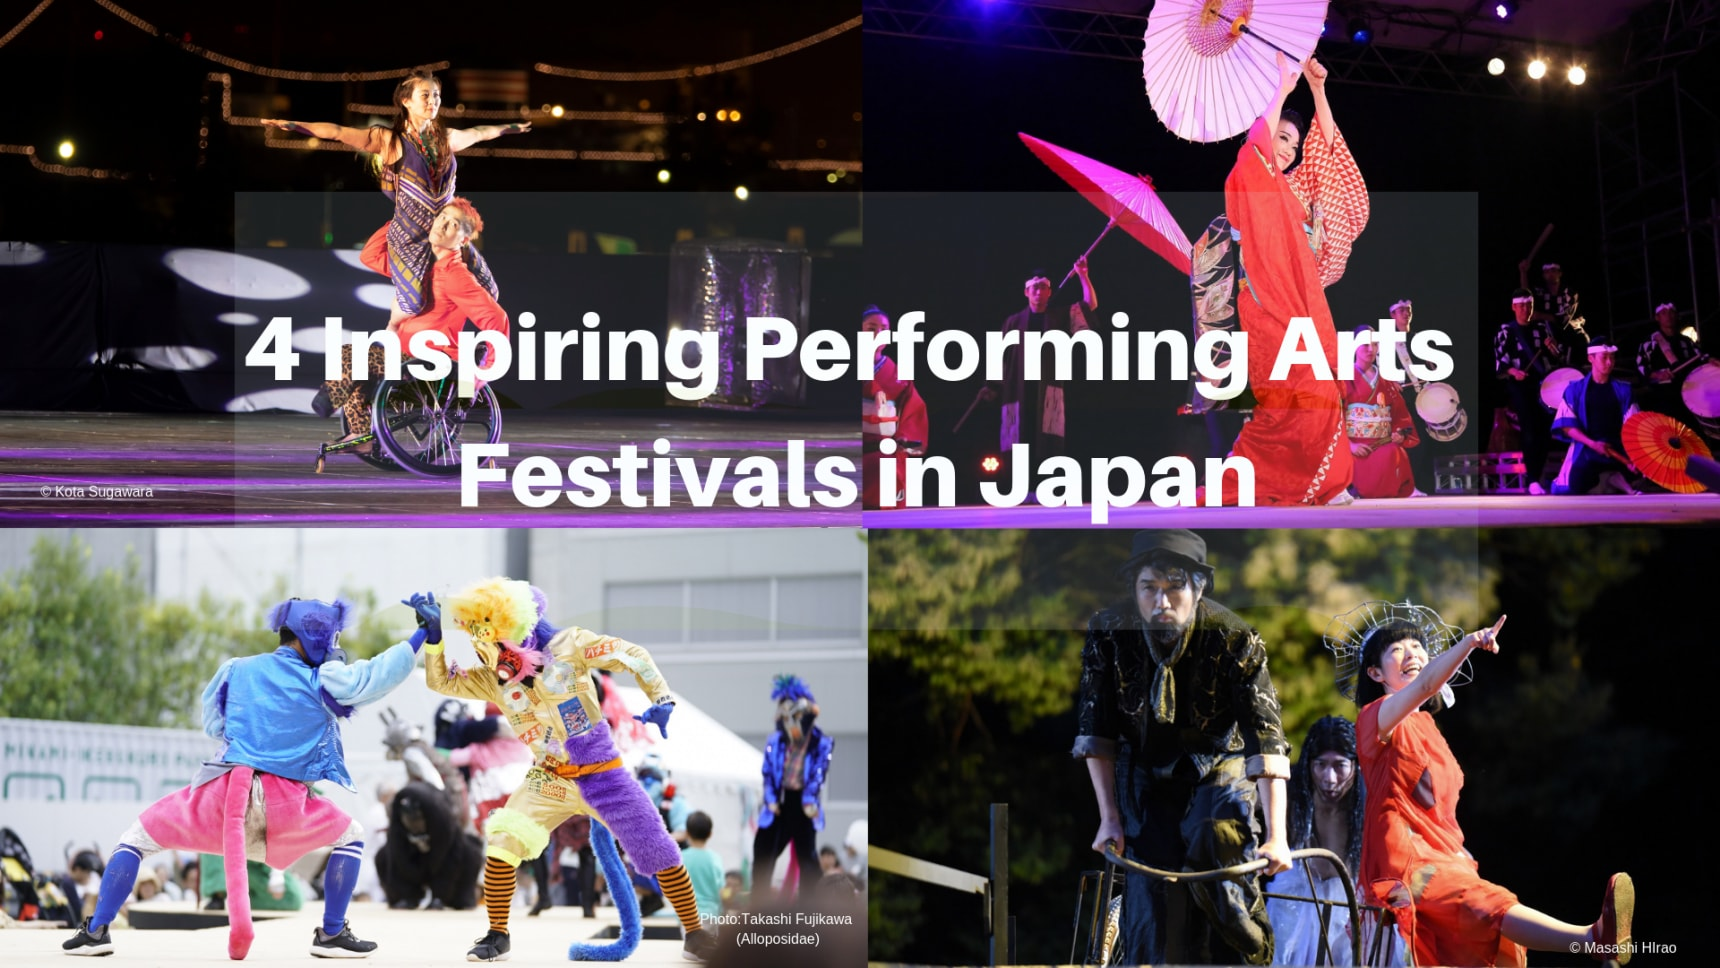 4 Inspiring Performing Arts Festivals in Japan